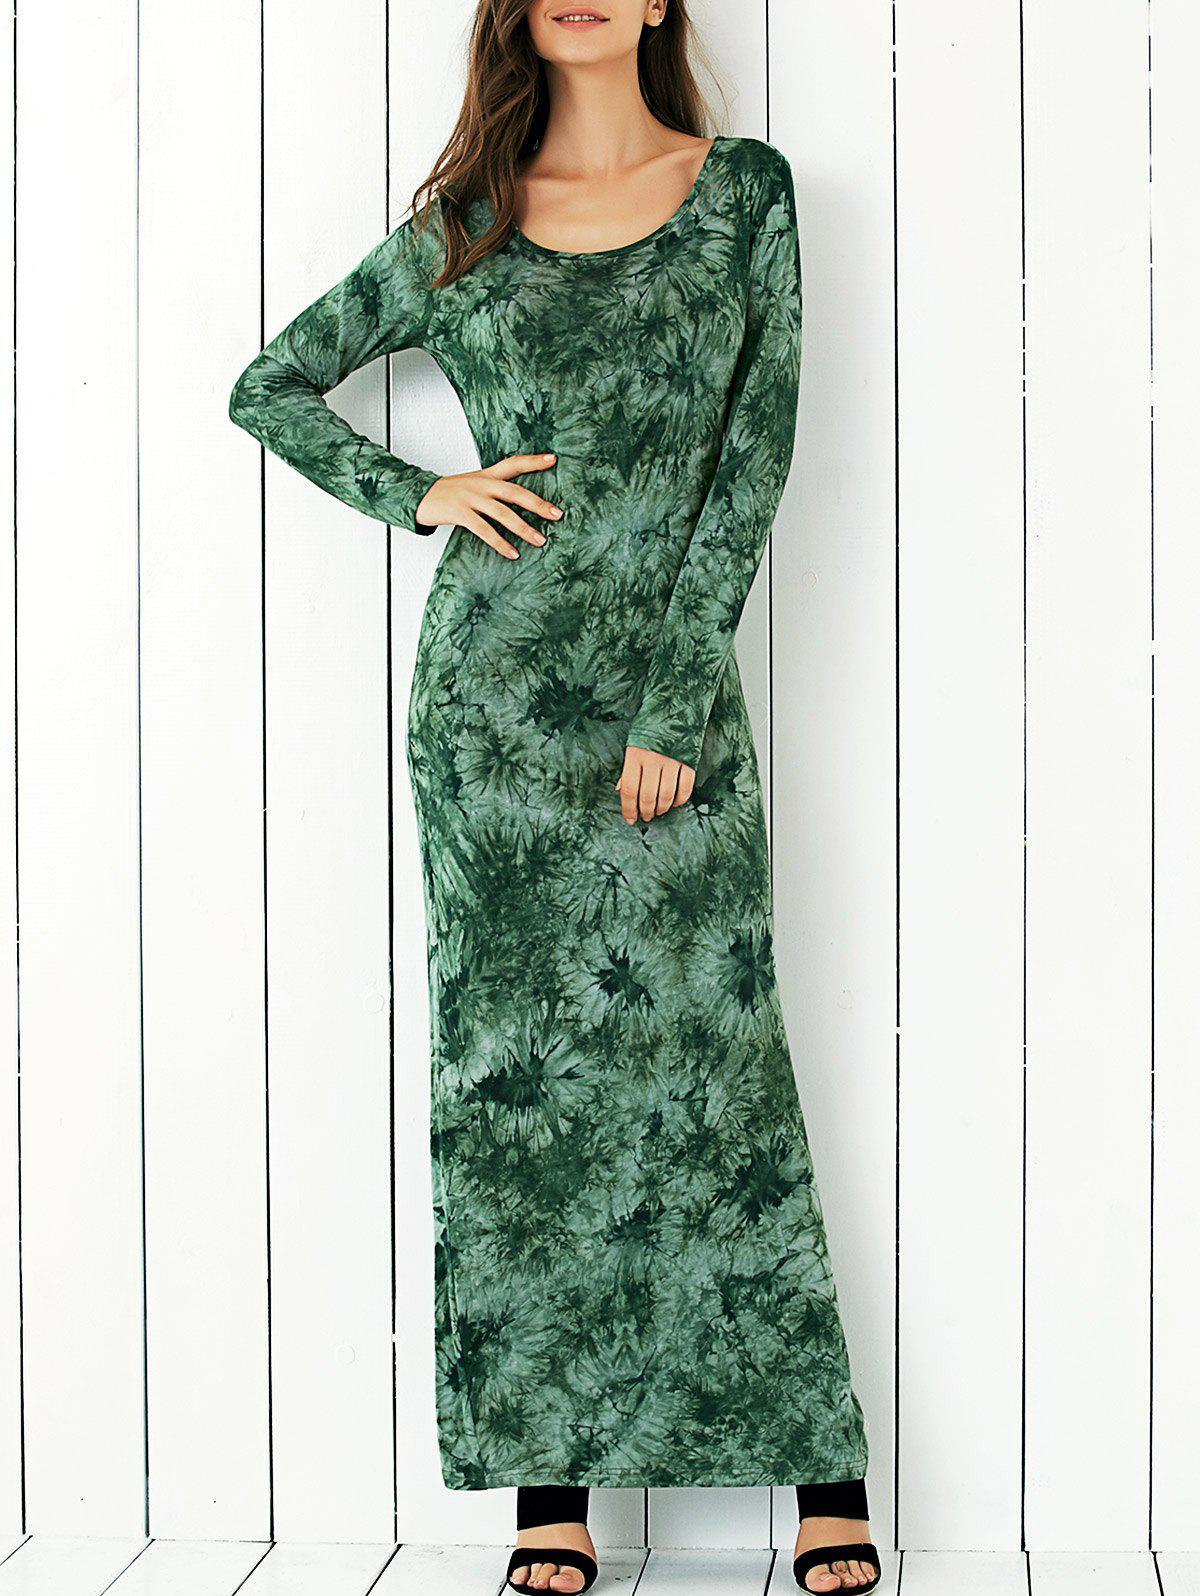 Long Sleeve Tie-Dye Floral Dress - GREEN XL